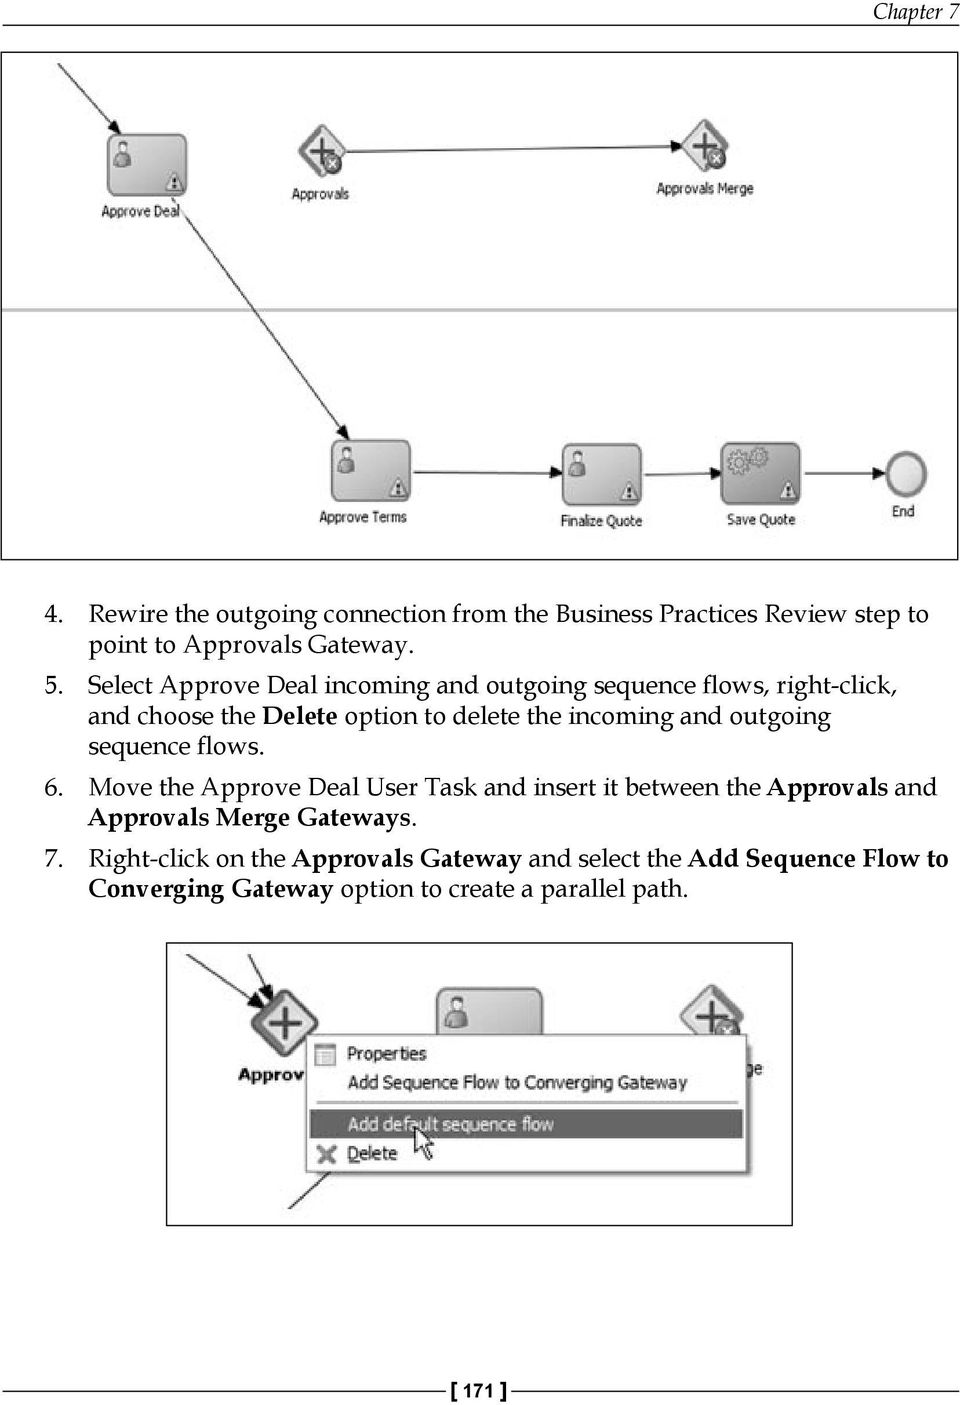 outgoing sequence flows. 6. Move the Approve Deal User Task and insert it between the Approvals and Approvals Merge Gateways.